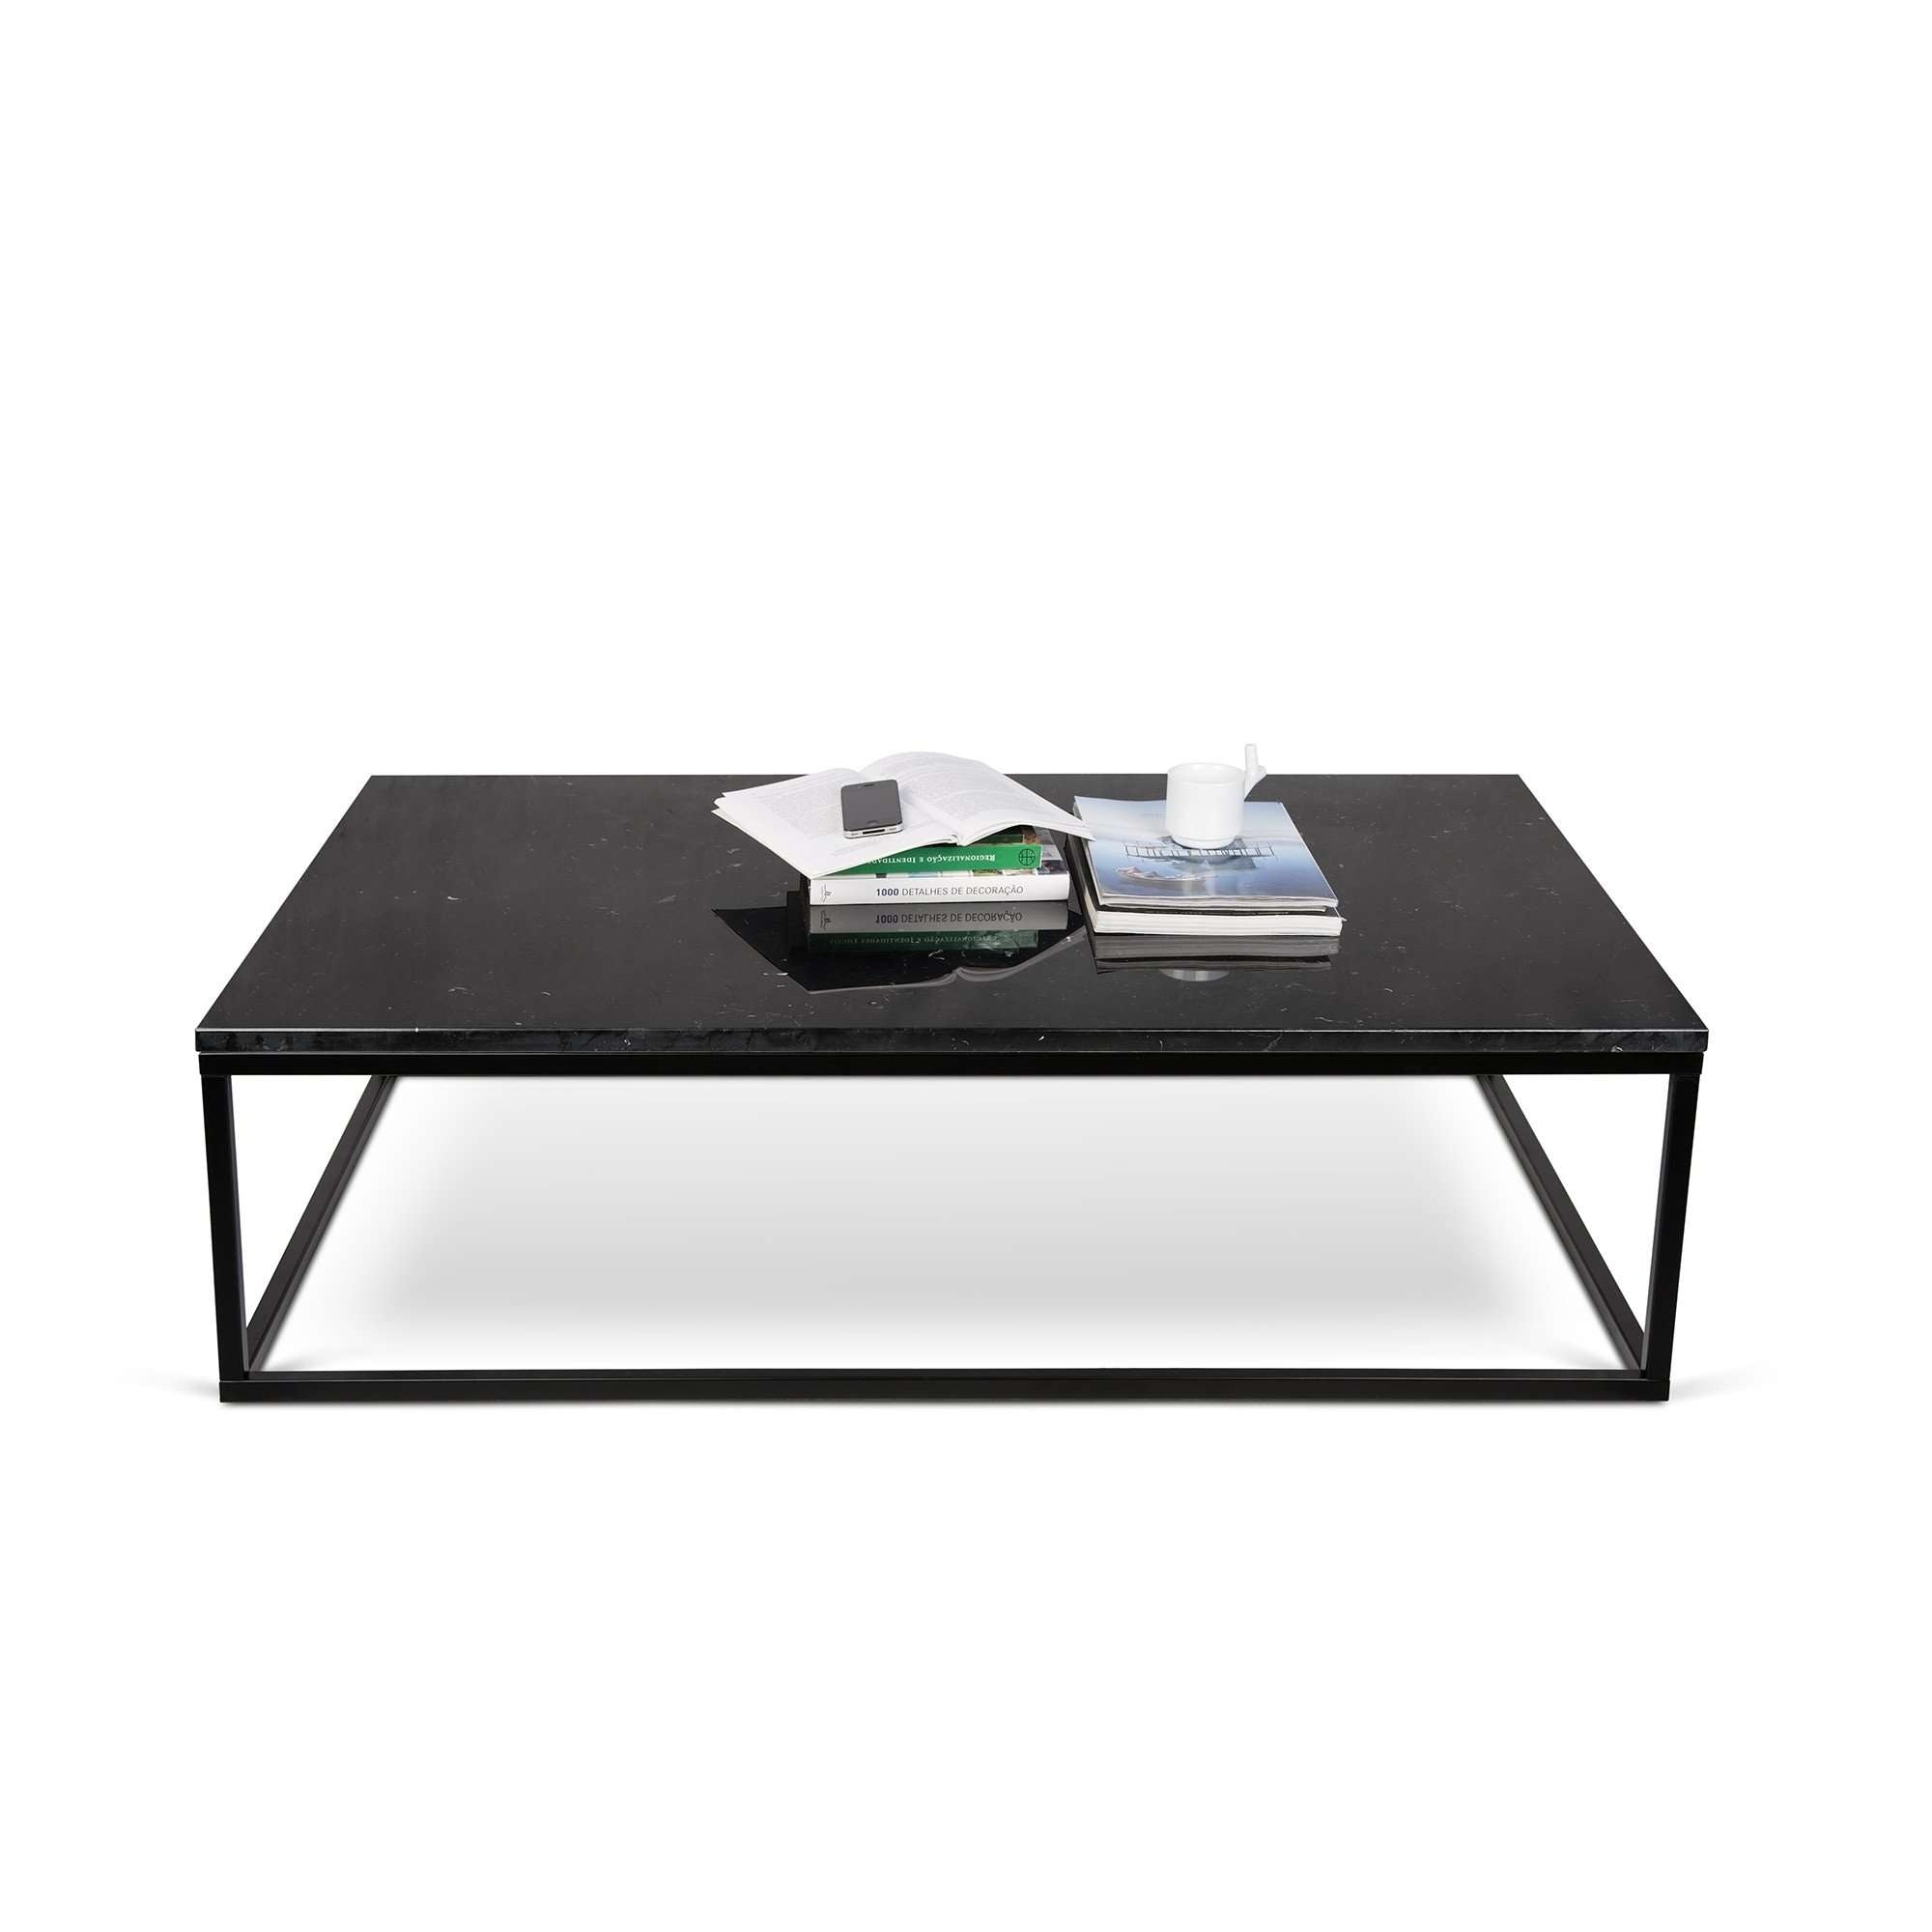 Tema Home-Prairie 47X30 Marble Coffee Table 059042-PRAIRIE47MAR-Coffee Table-MODTEMPO